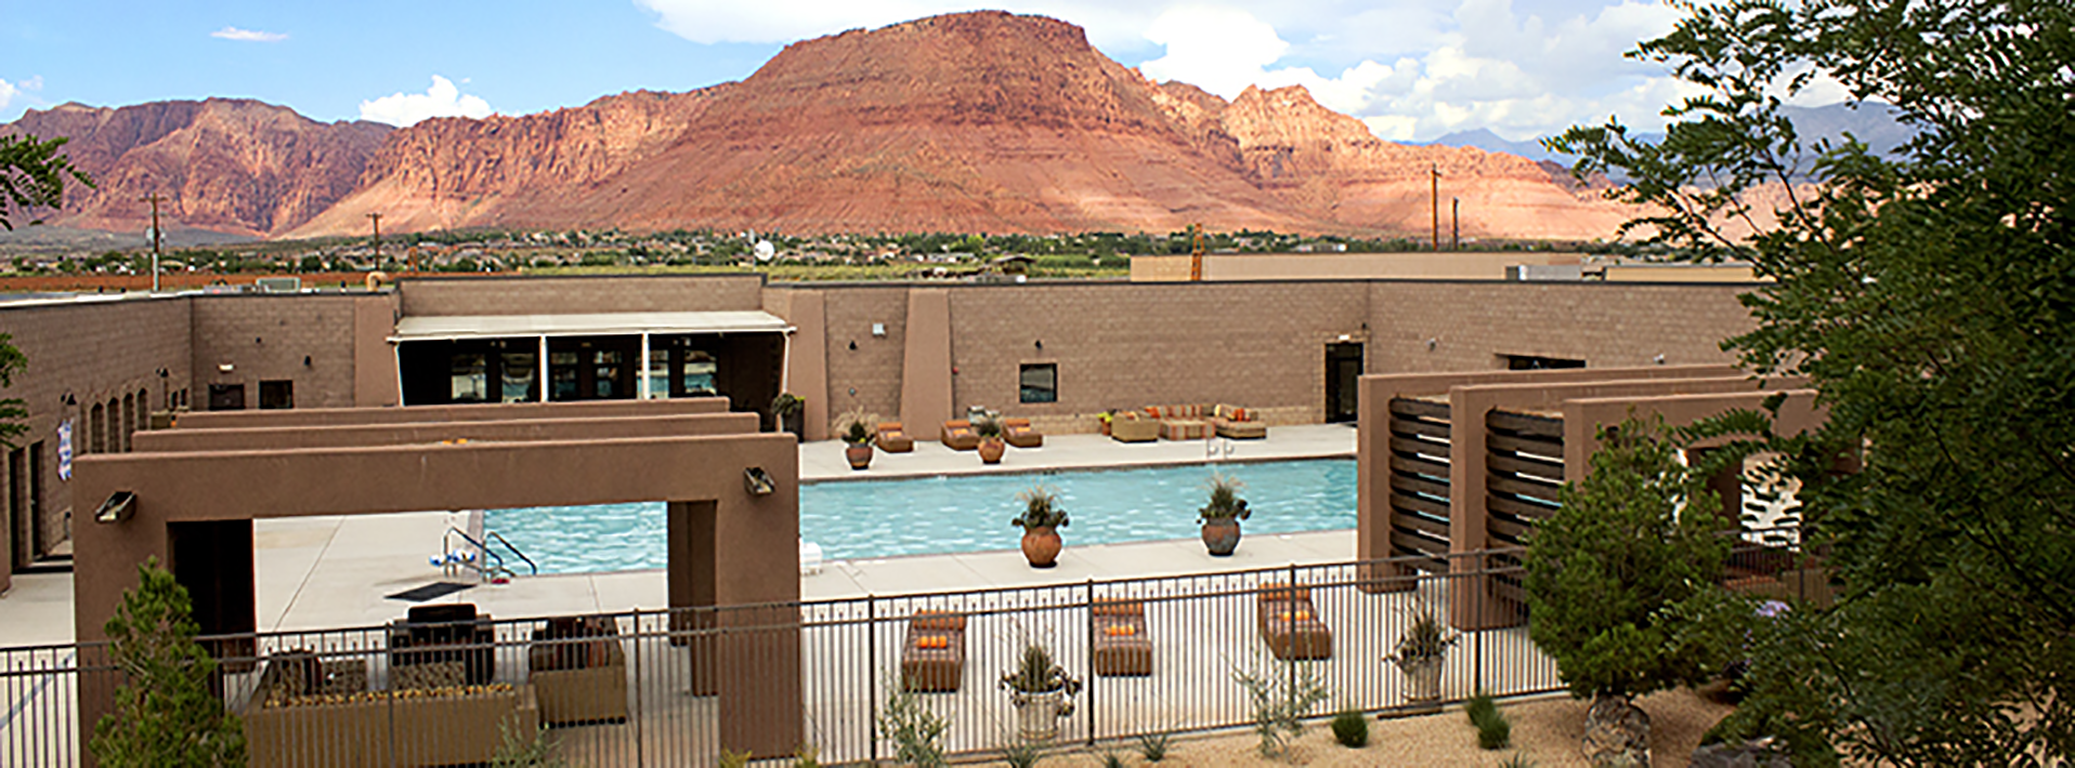 Pool red mountain